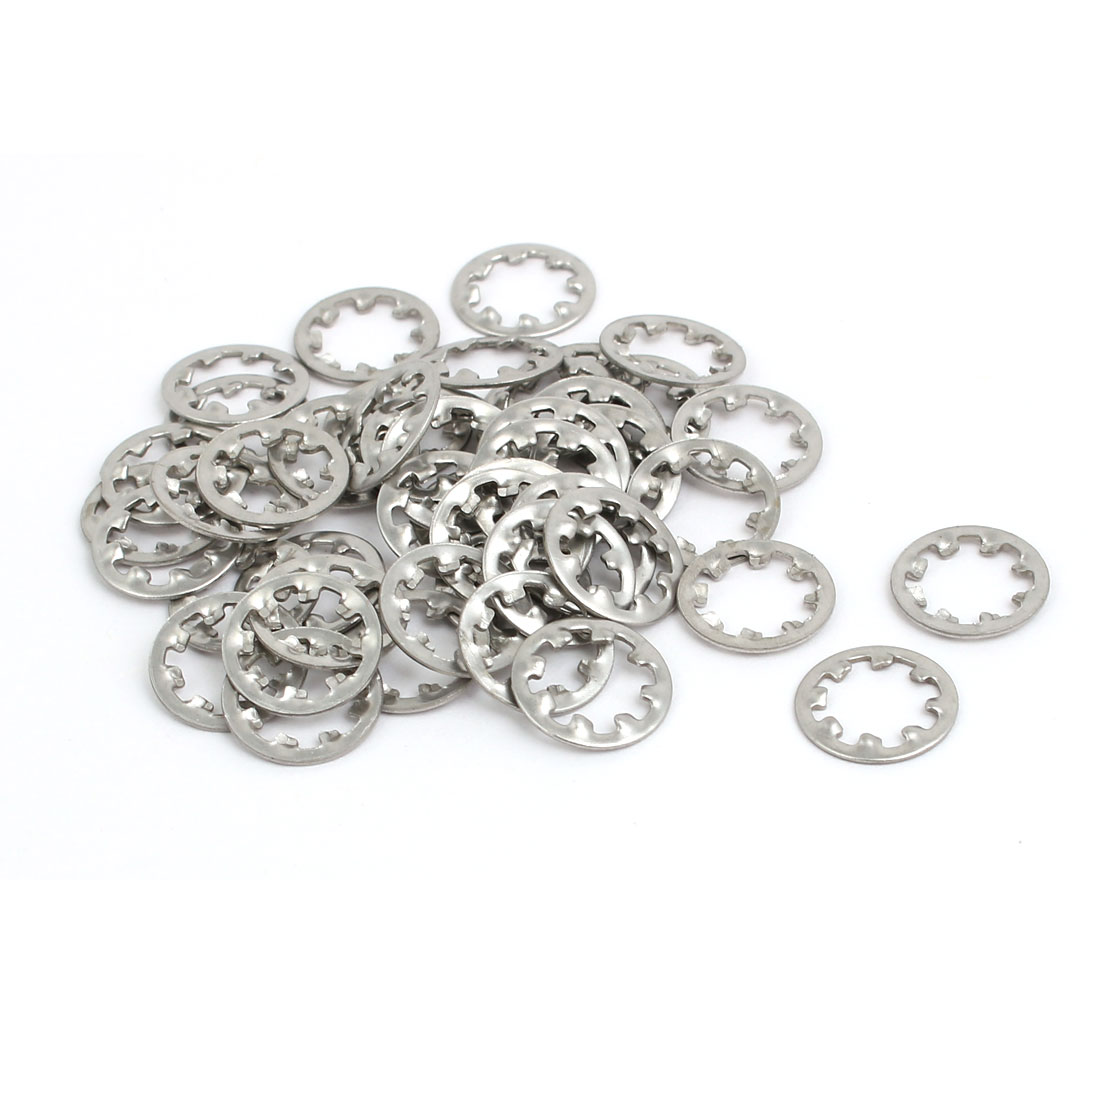 6mm Inner Dia Stainless Steel Internal Tooth Lock Washer Silver Tone 50pcs